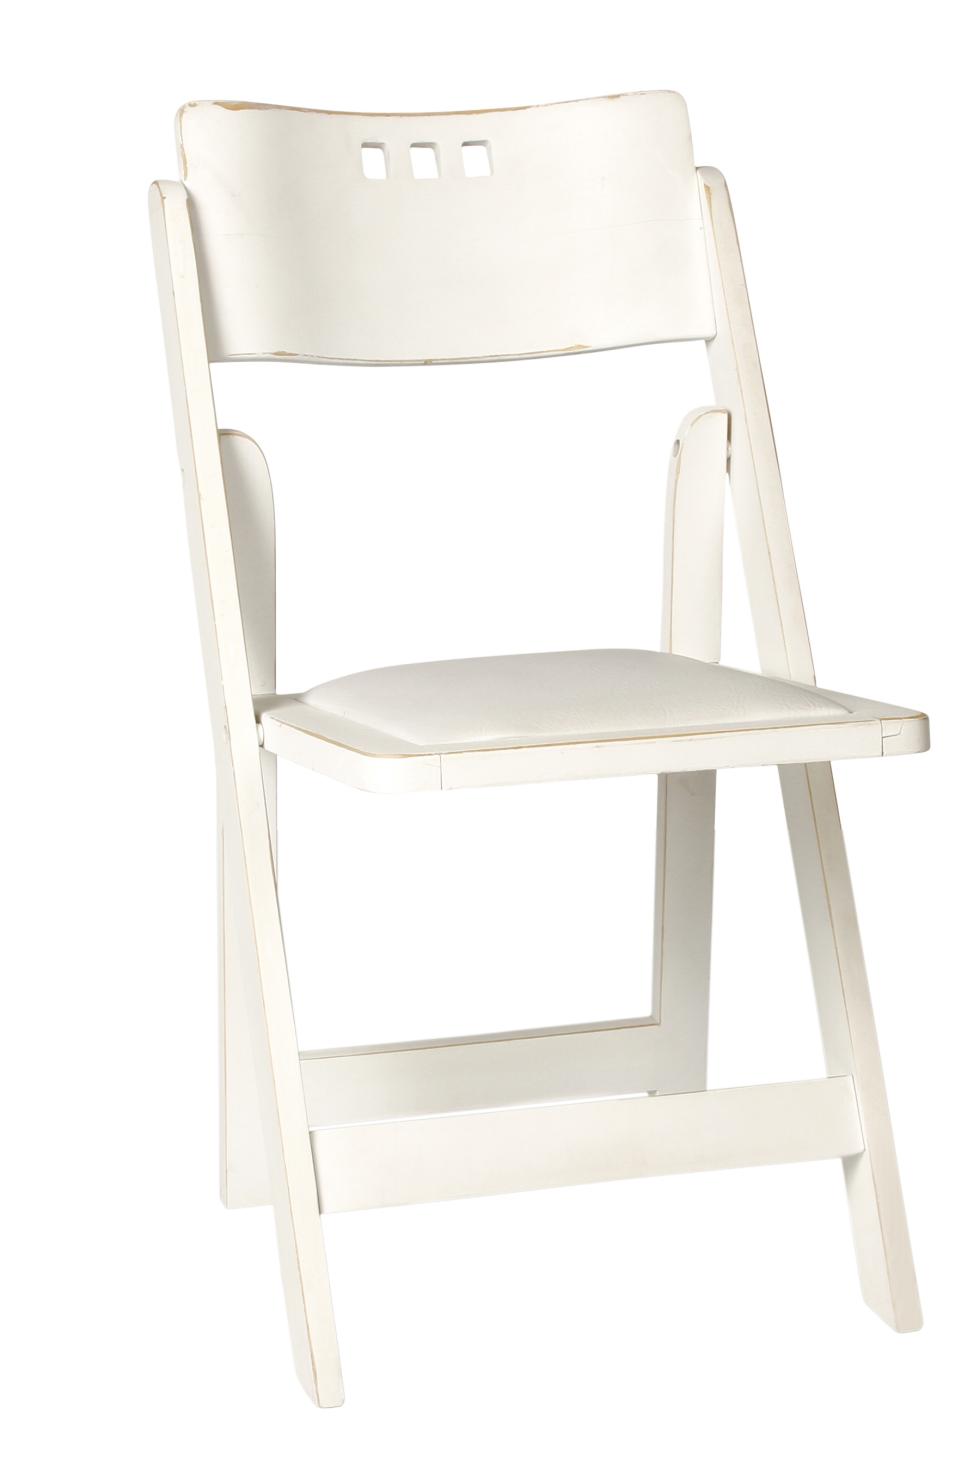 WHITE DISTRESSED 3 HOLE WOOD FOLDING CHAIR